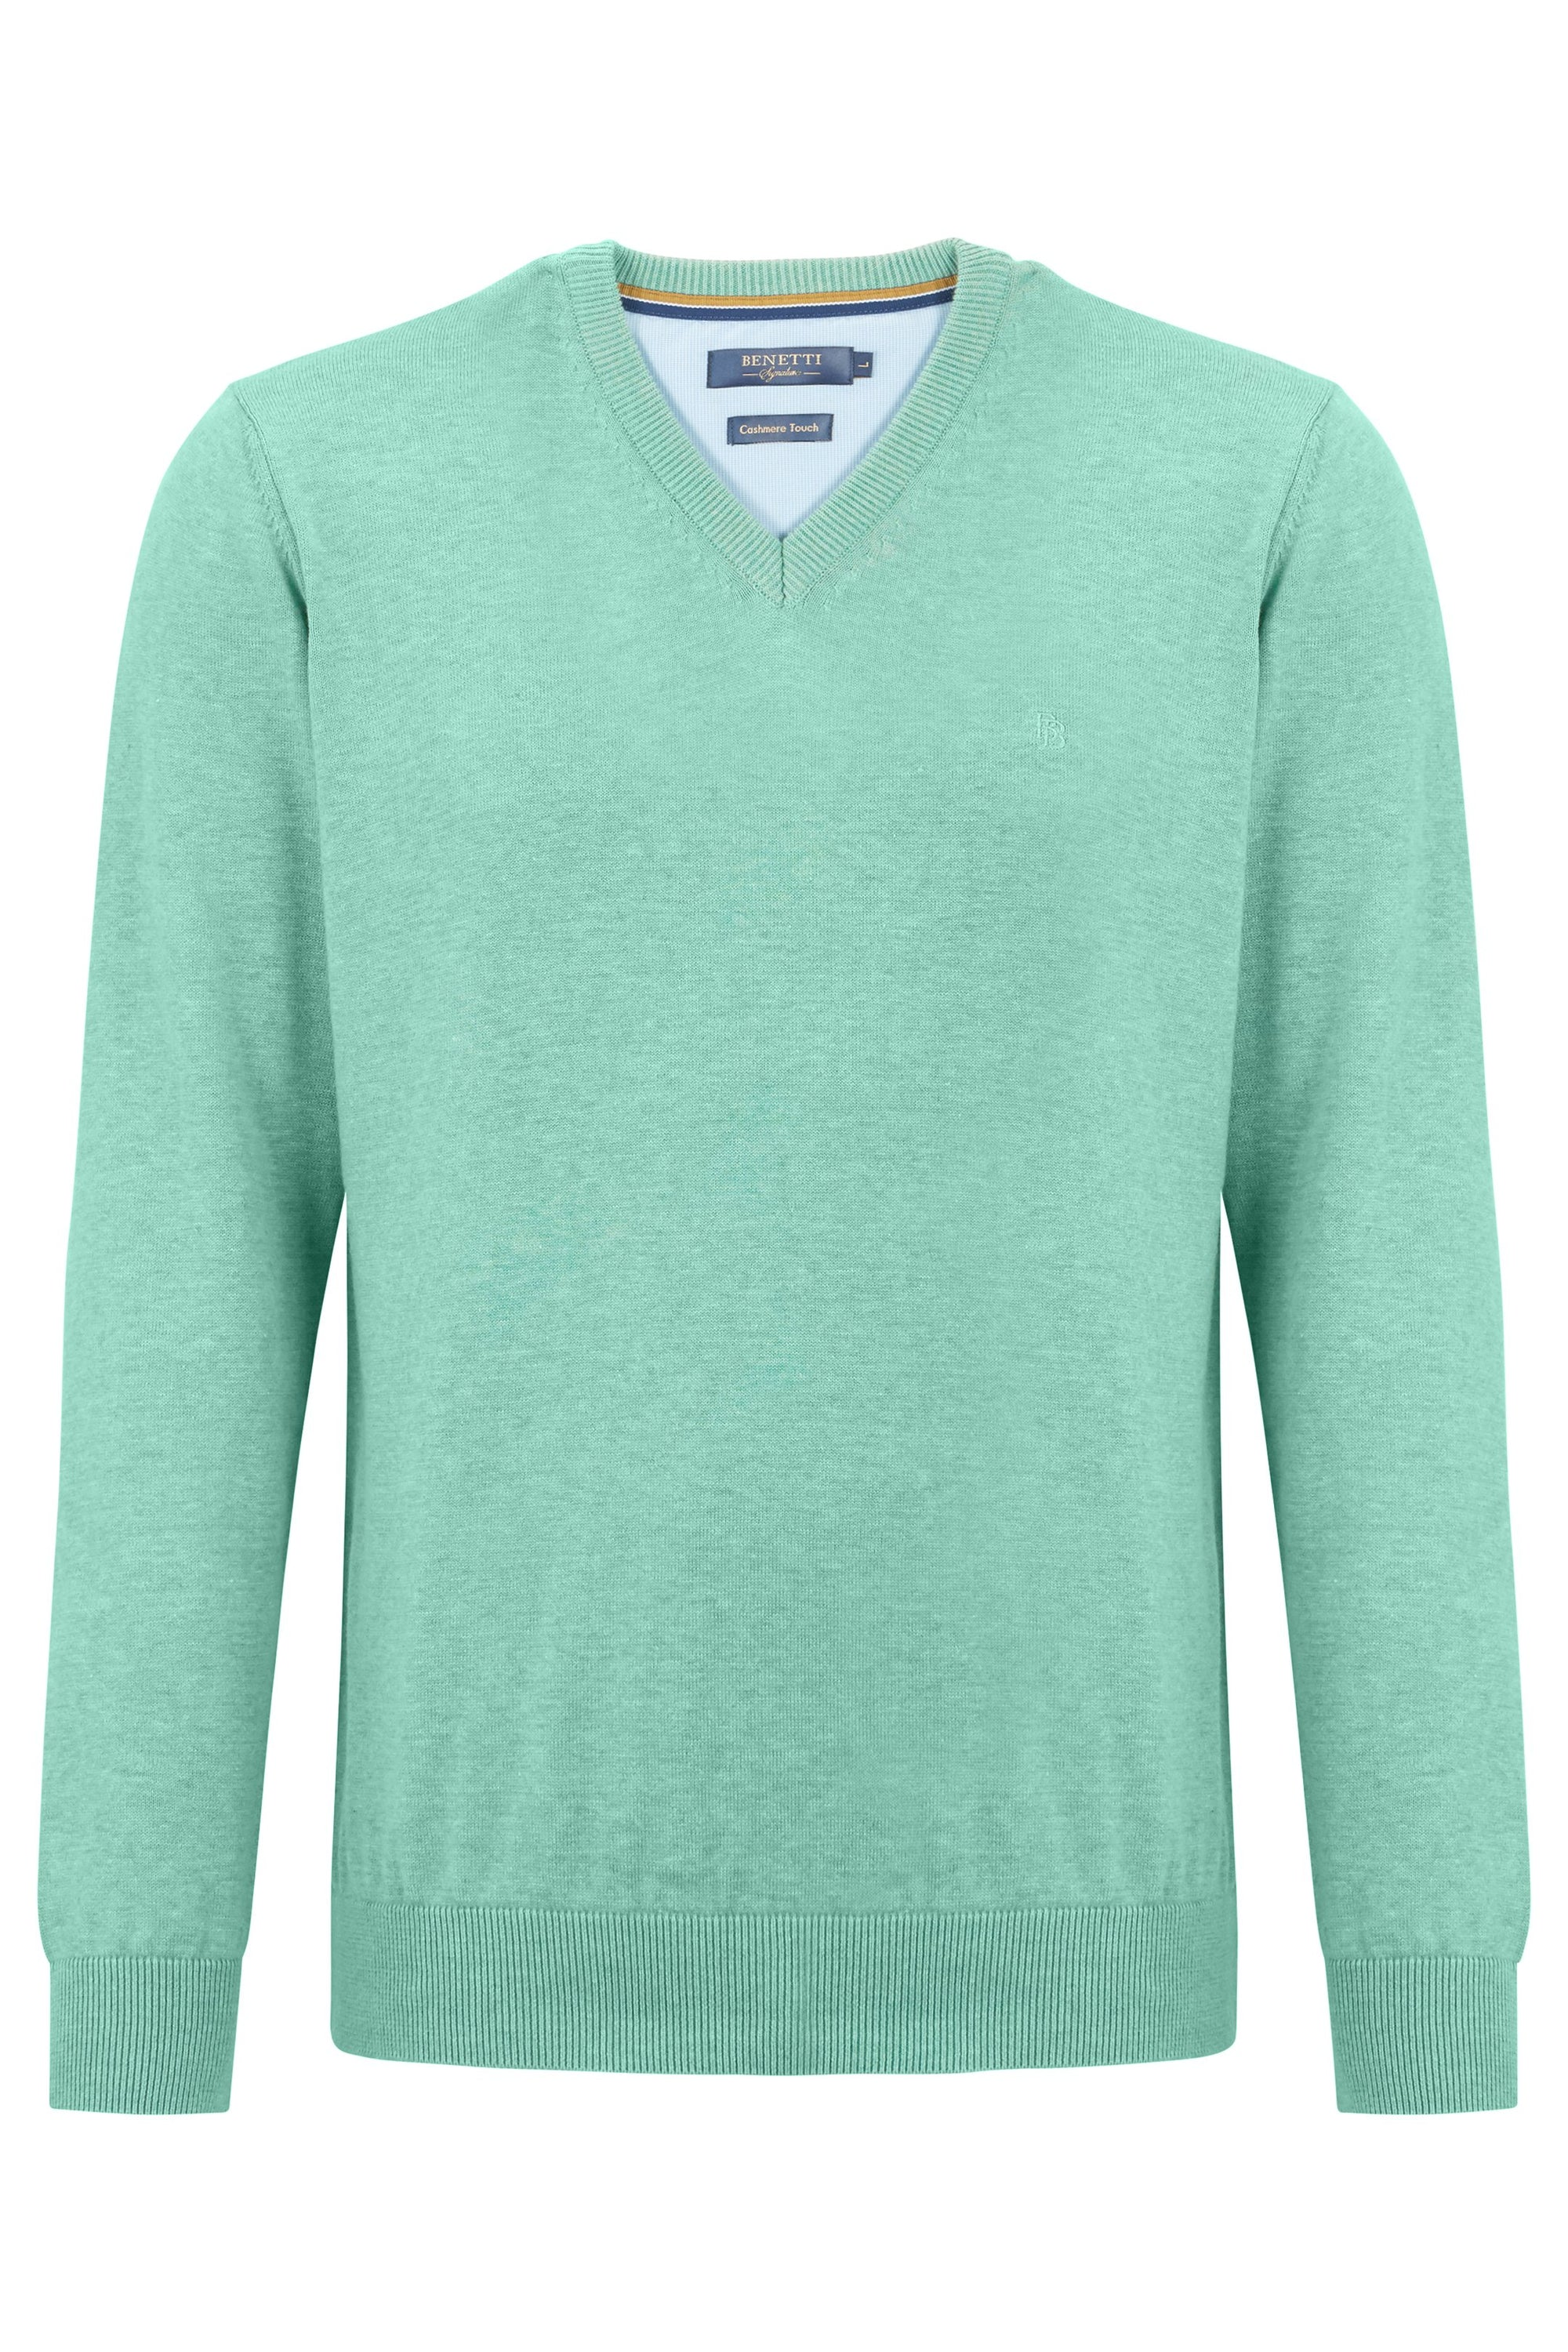 Mint V Neck Sweater